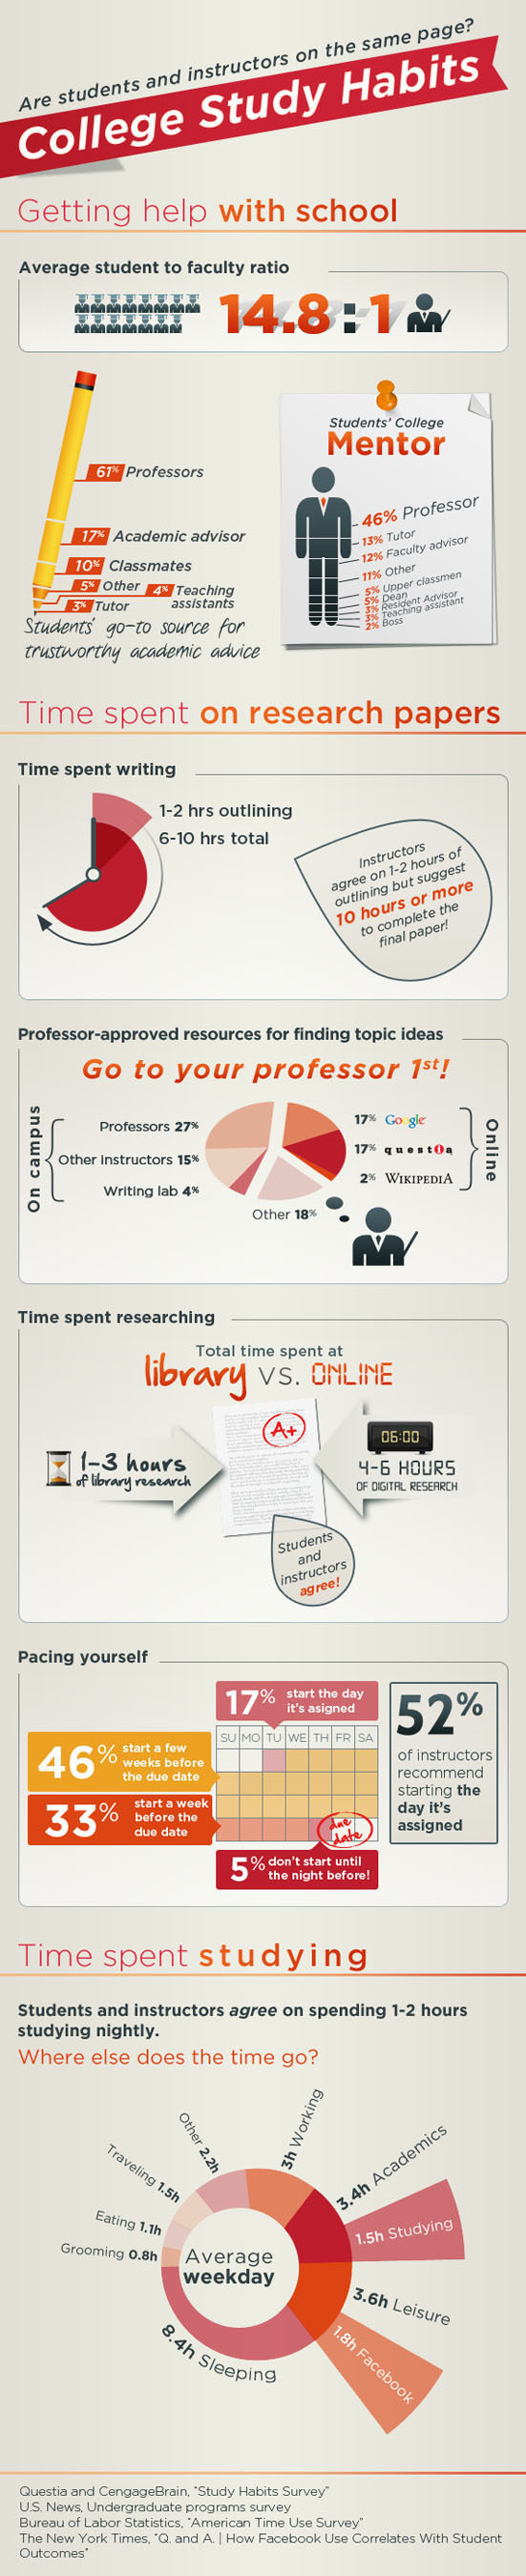 College Study Habits.  (PRNewsFoto/Cengage Learning)